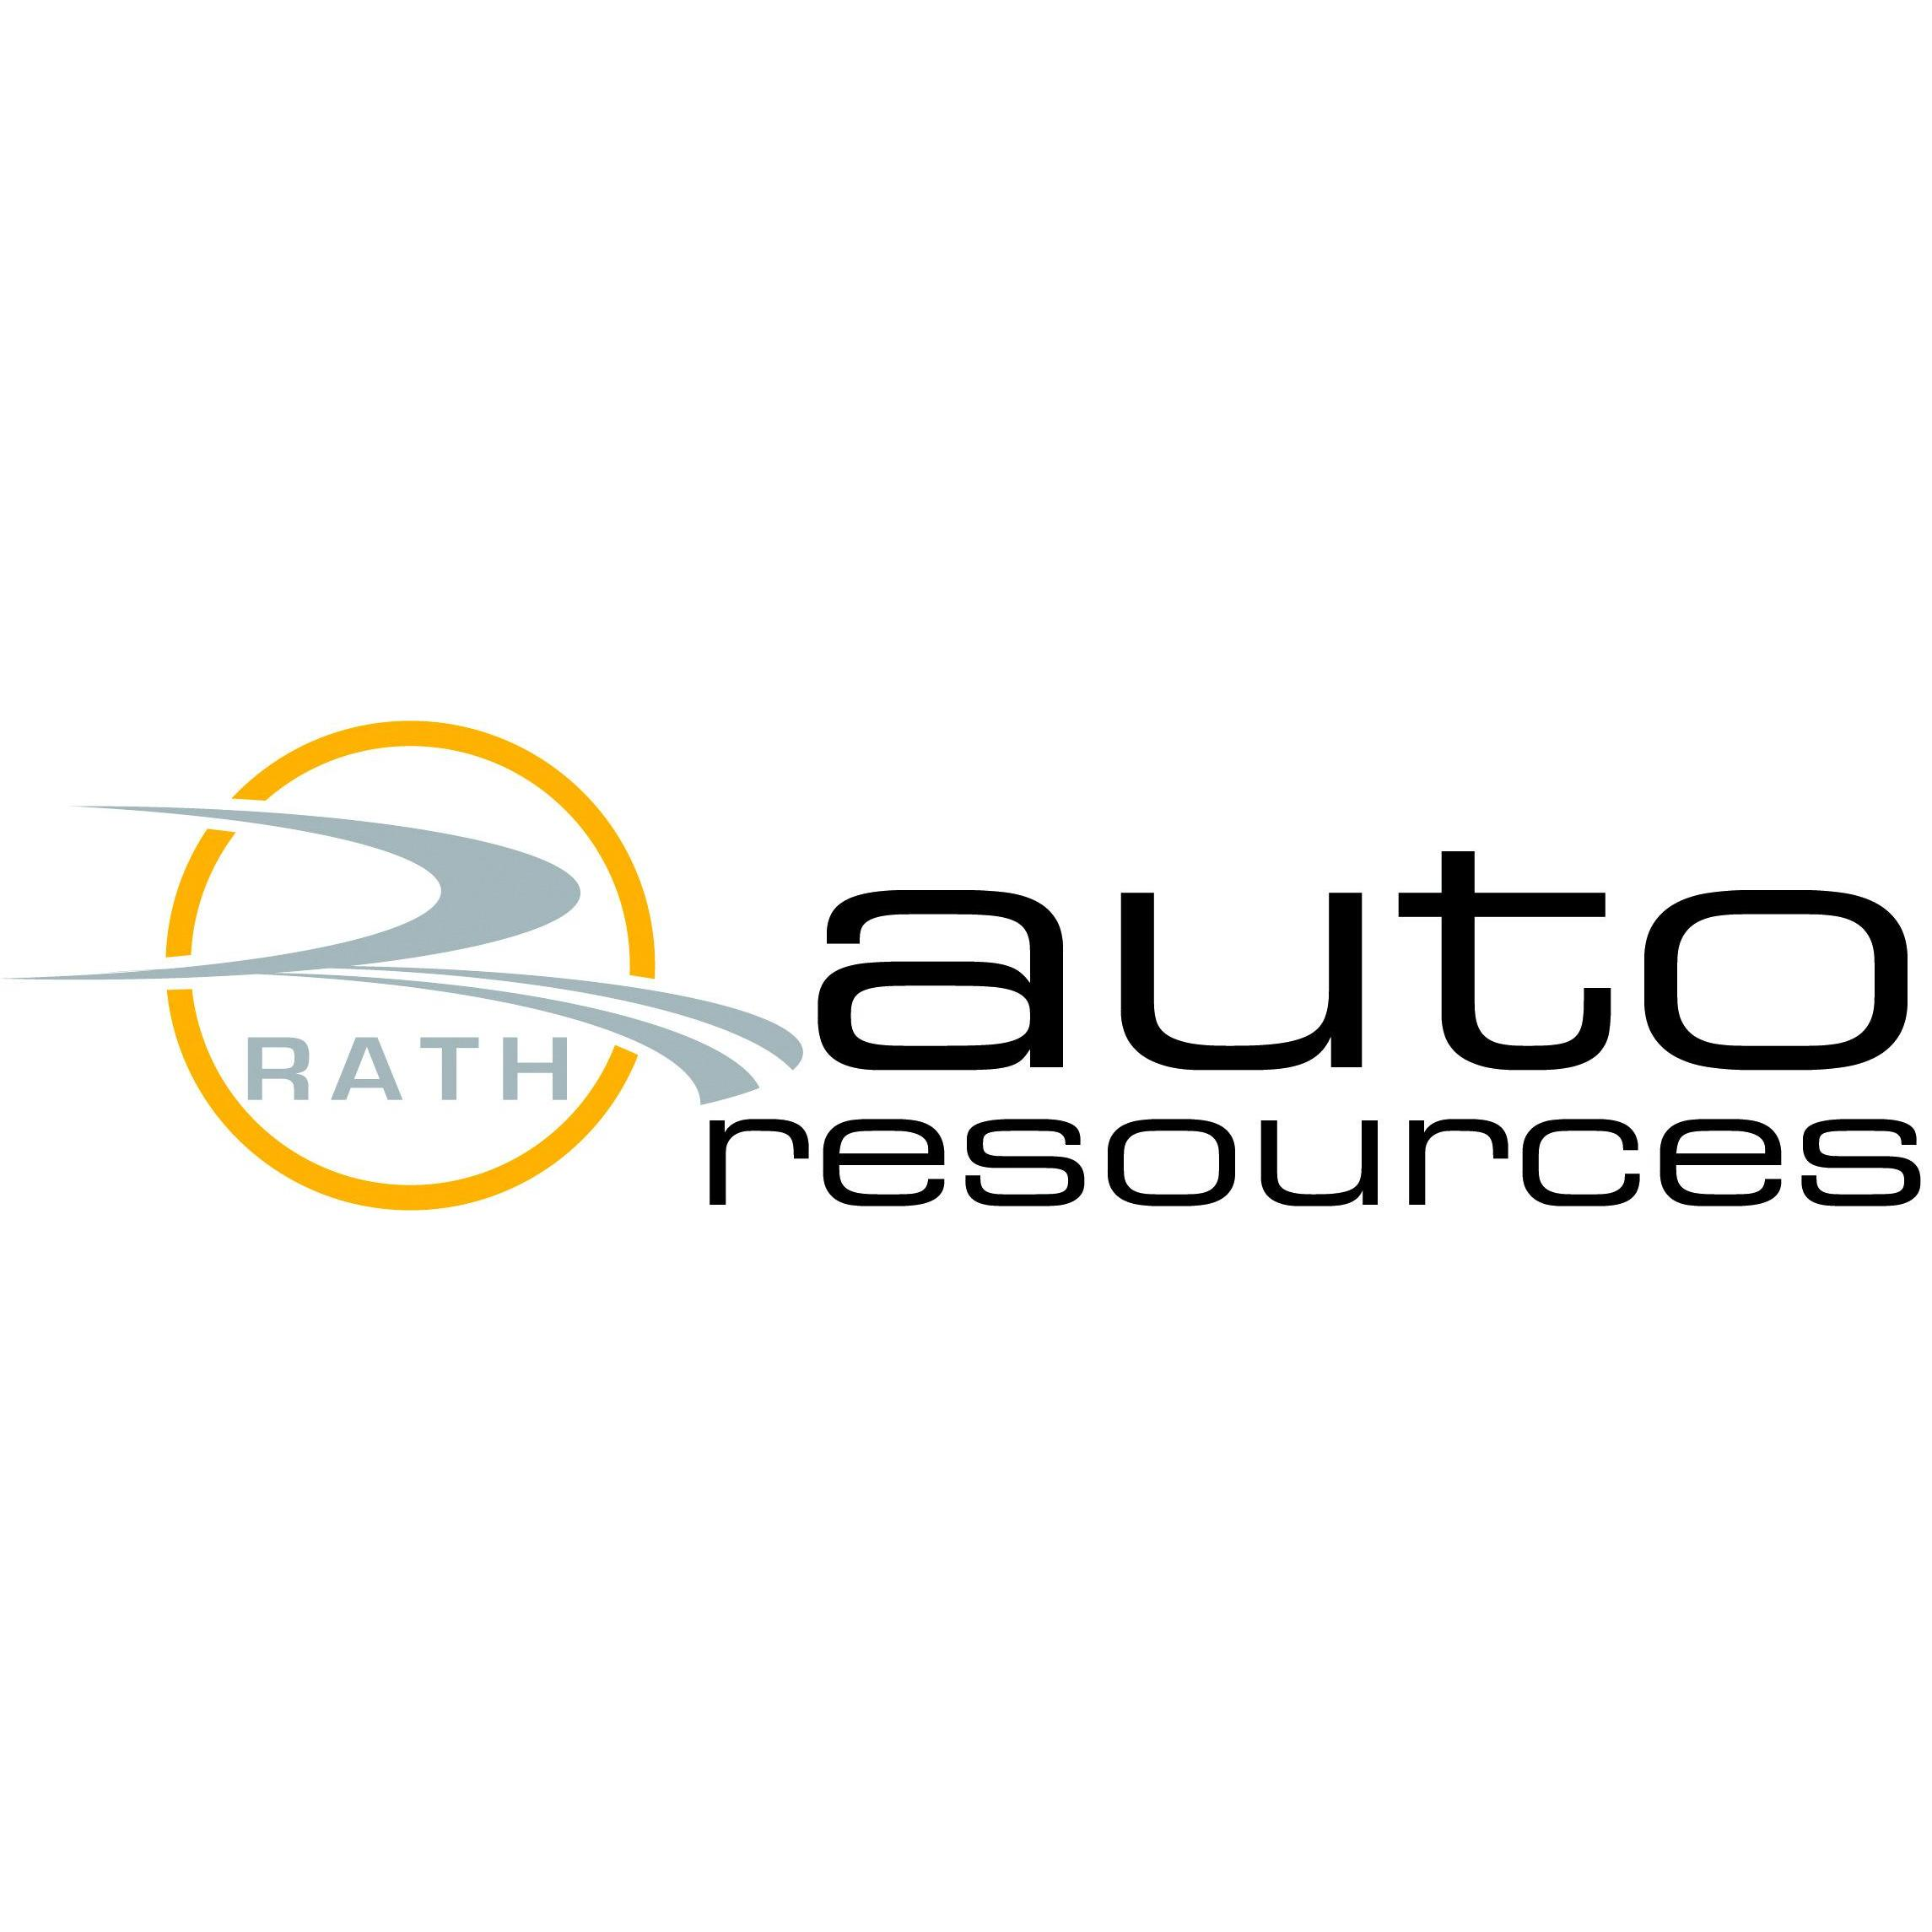 Rath Auto Resources In Fort Smith, AR